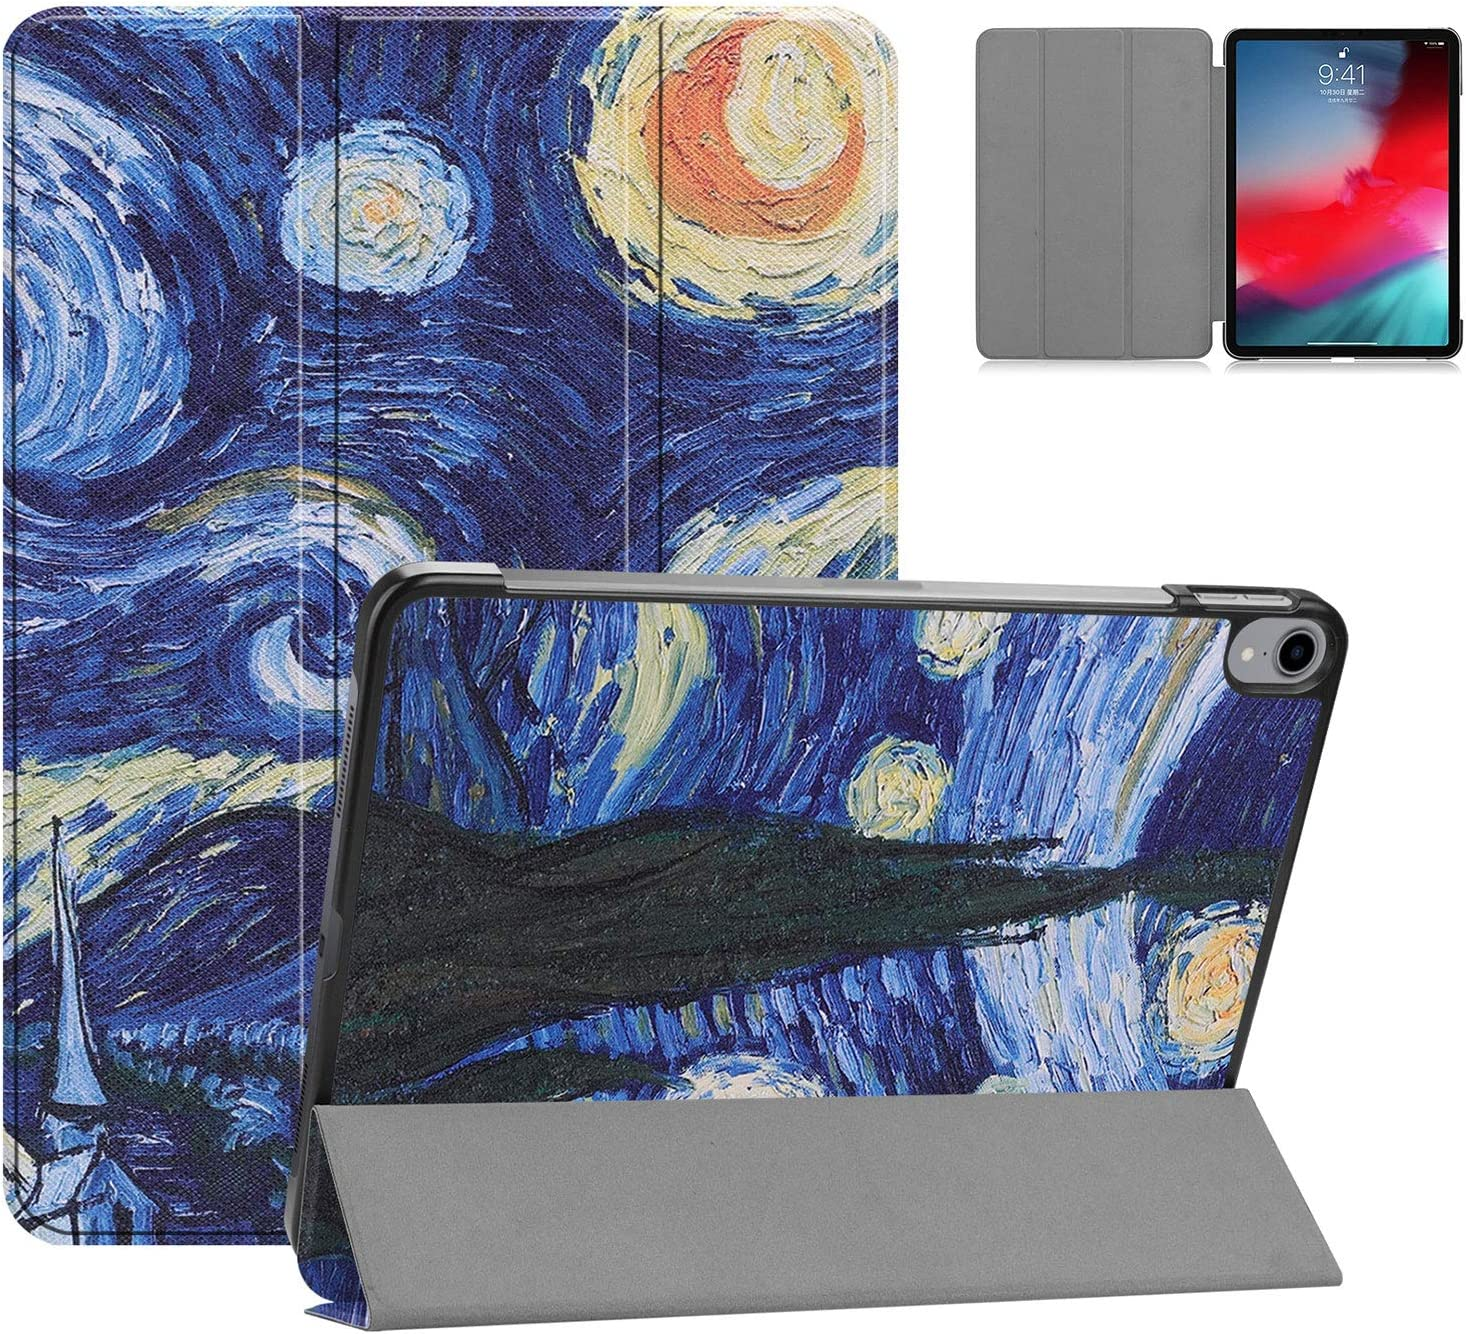 """Premium Folio Case for iPad Pro 11"""" 2018, Cookk Book Cover Design [Apple Pencil Holder], Multi-Angle Viewing Stand, Smart Cover Auto Sleep/Wake for iPad 11"""" (2018 Release), Starry Night"""